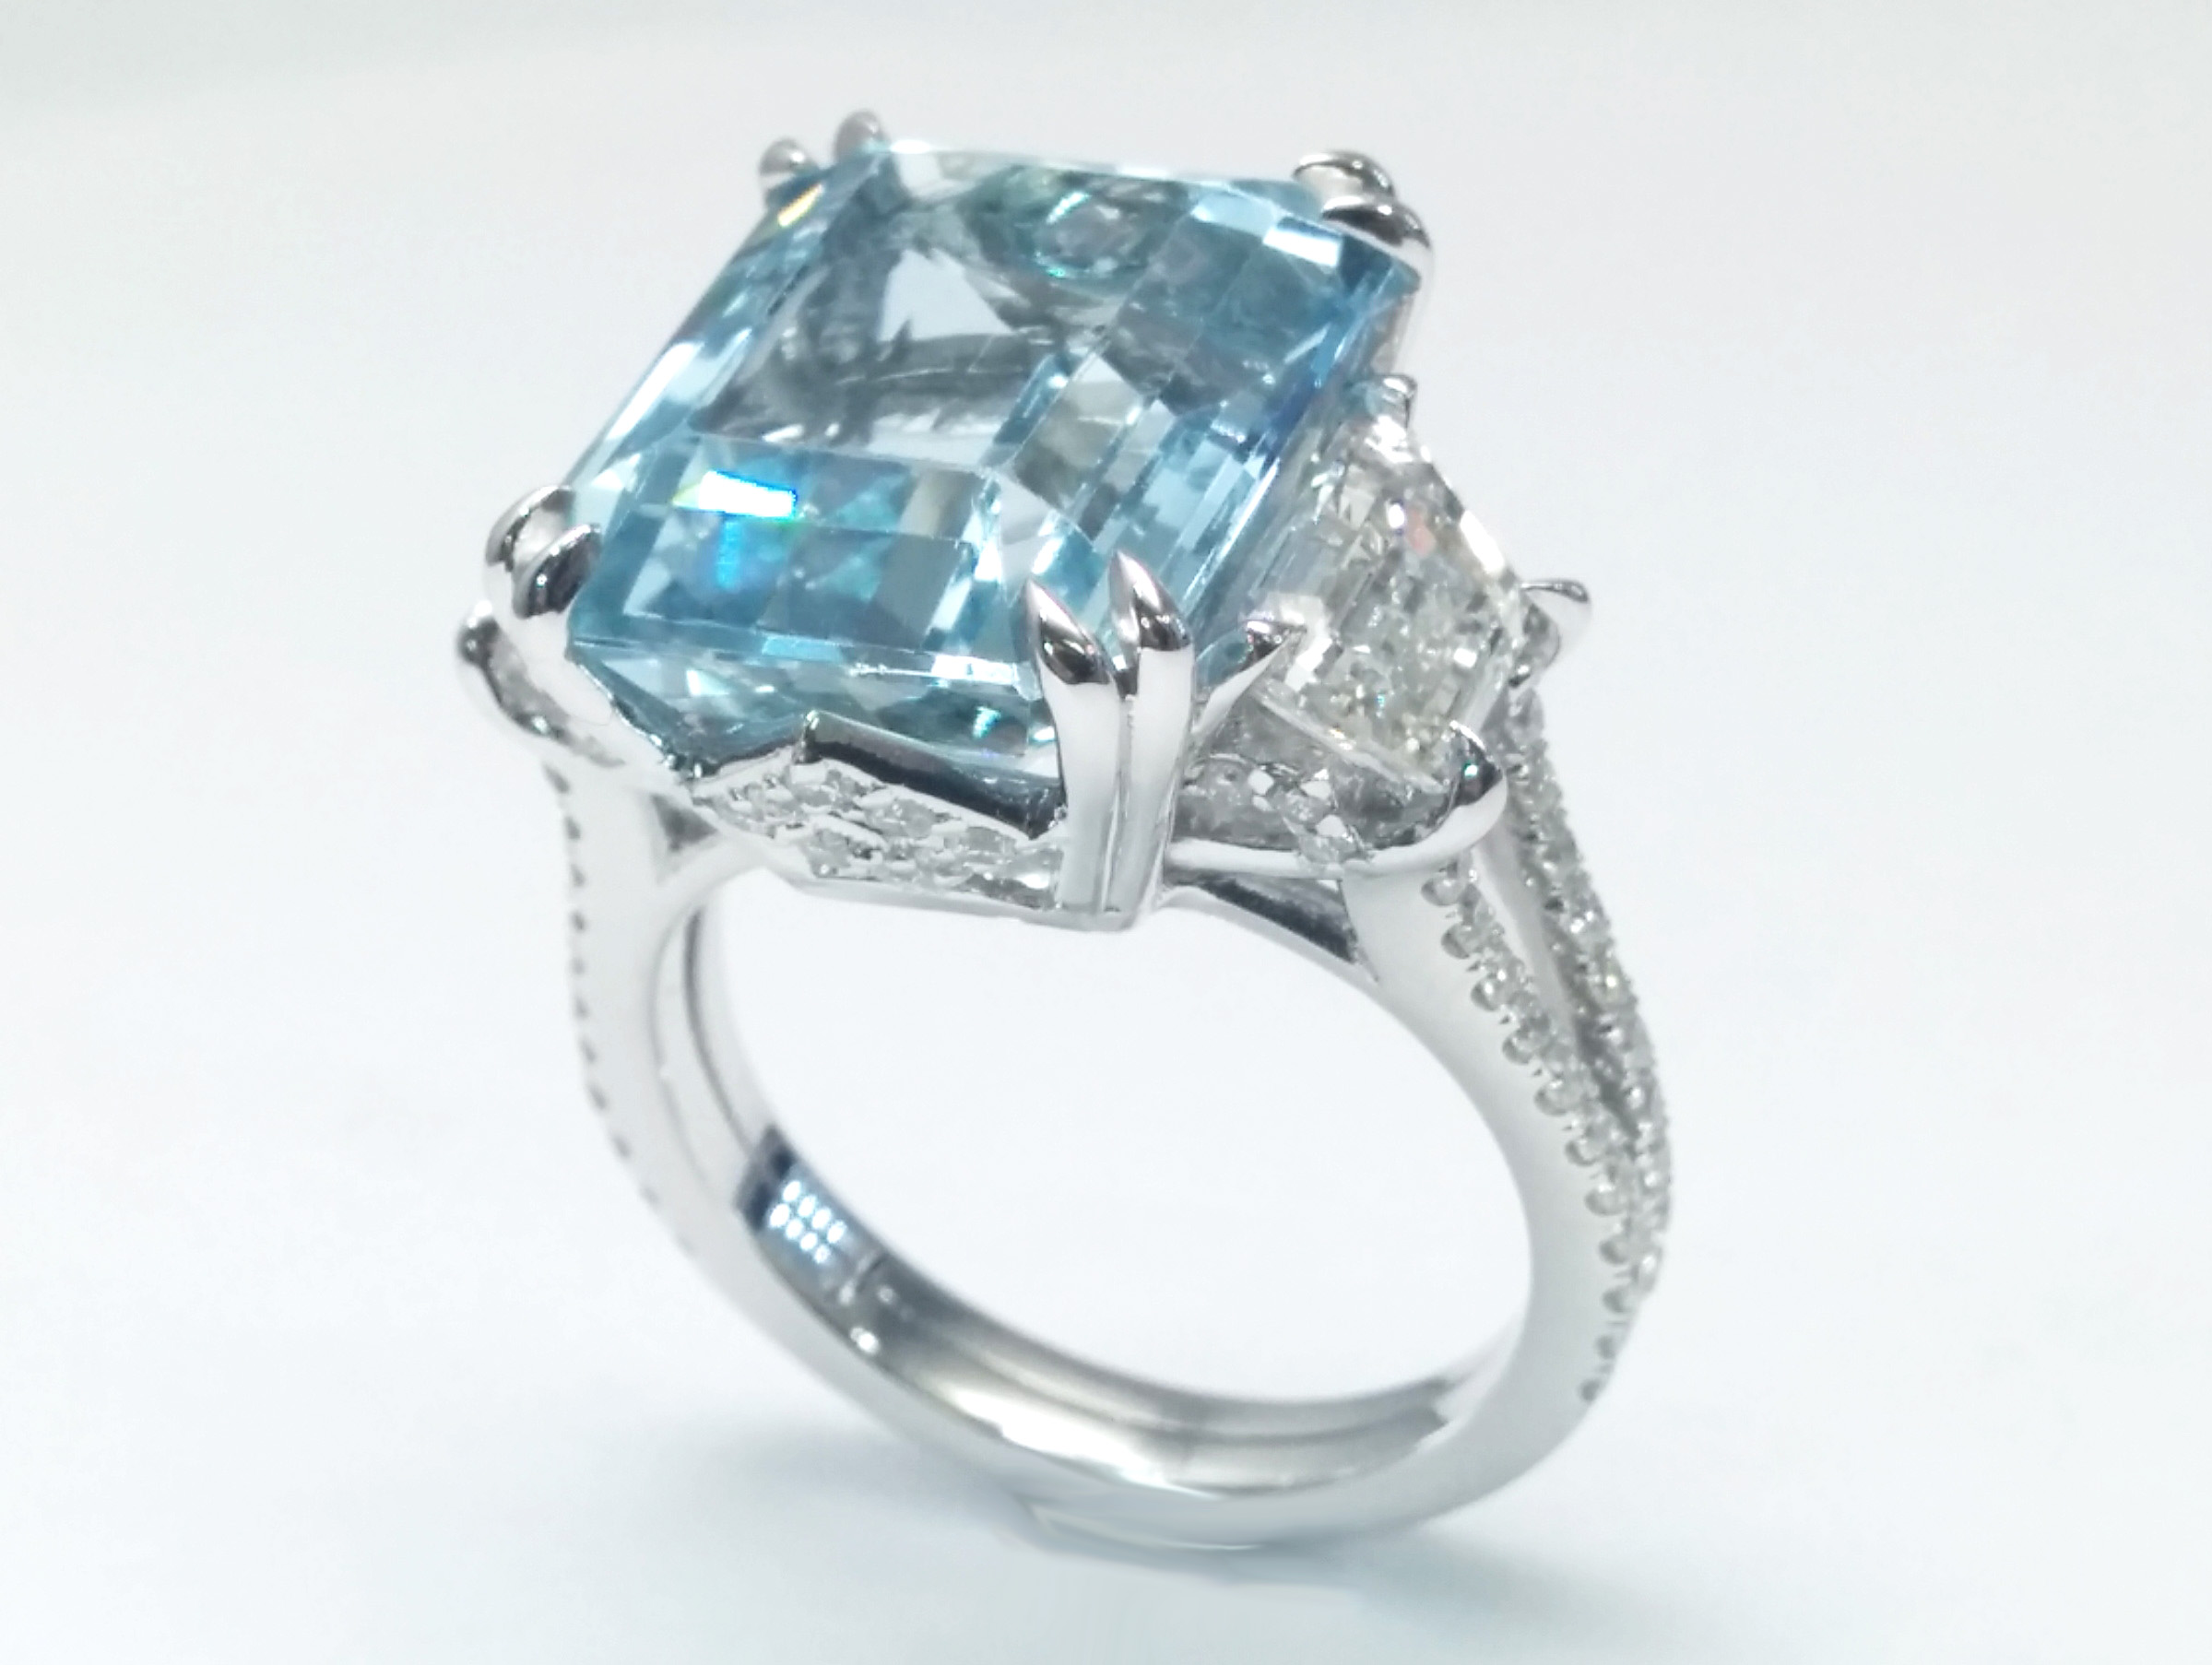 7.30 CTW Large Emerald Cut Aquamarine With Trapezoid Diamond Sides